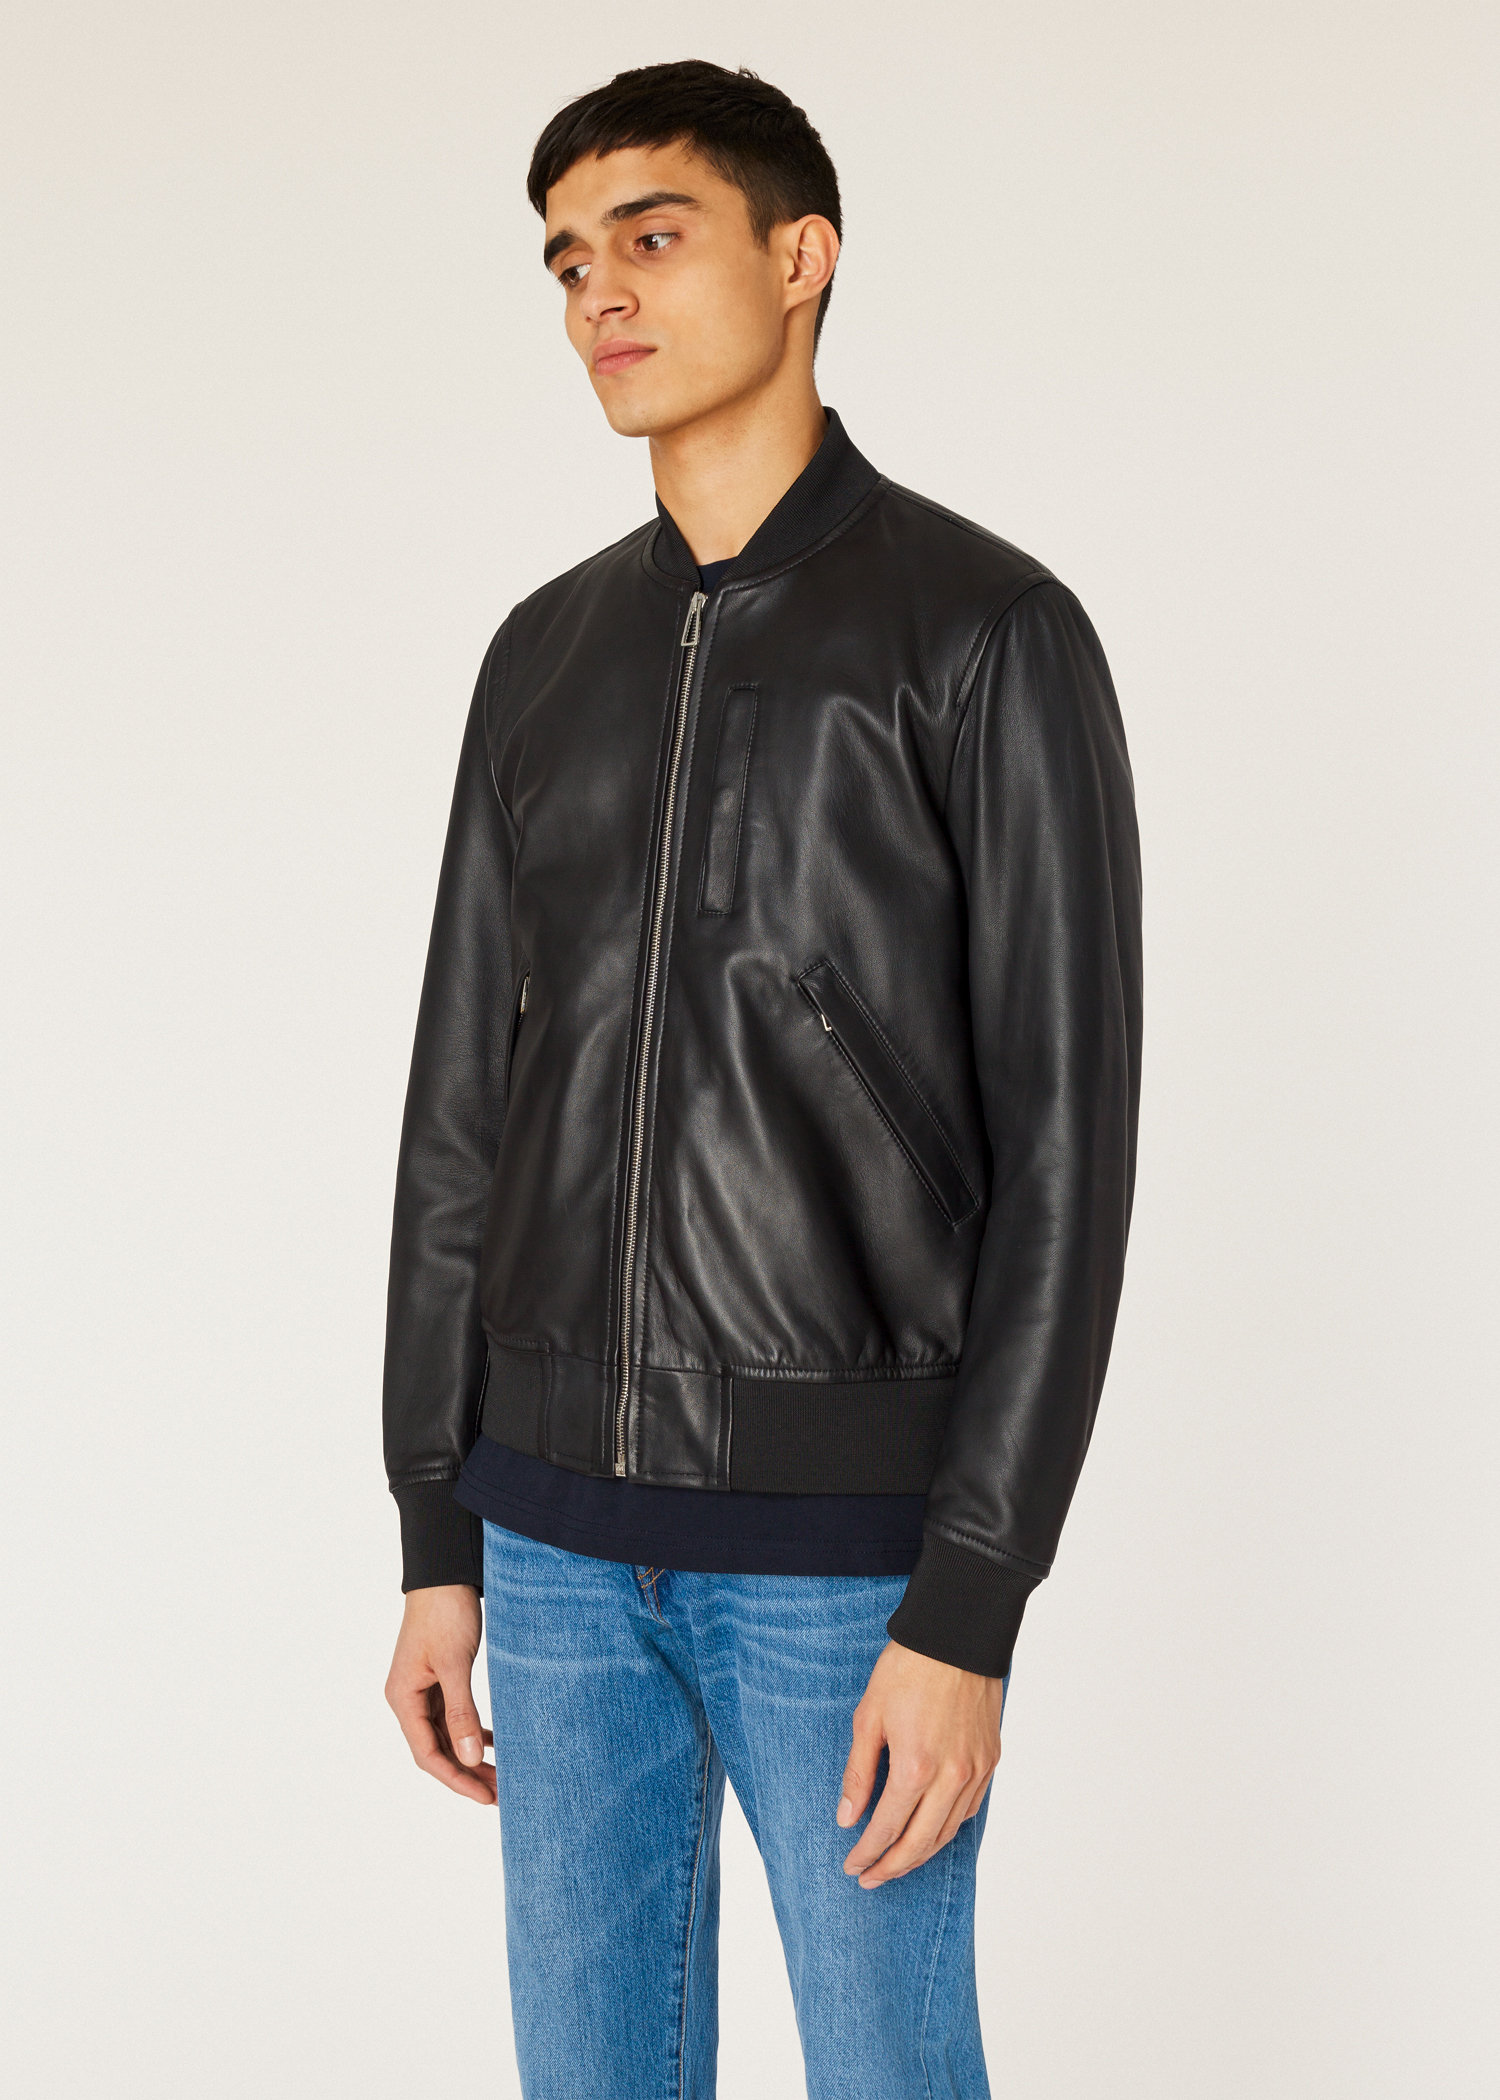 caf6cffba125 Model front close up- Men's Black Leather Bomber Jacket With Front Pockets  Paul Smith